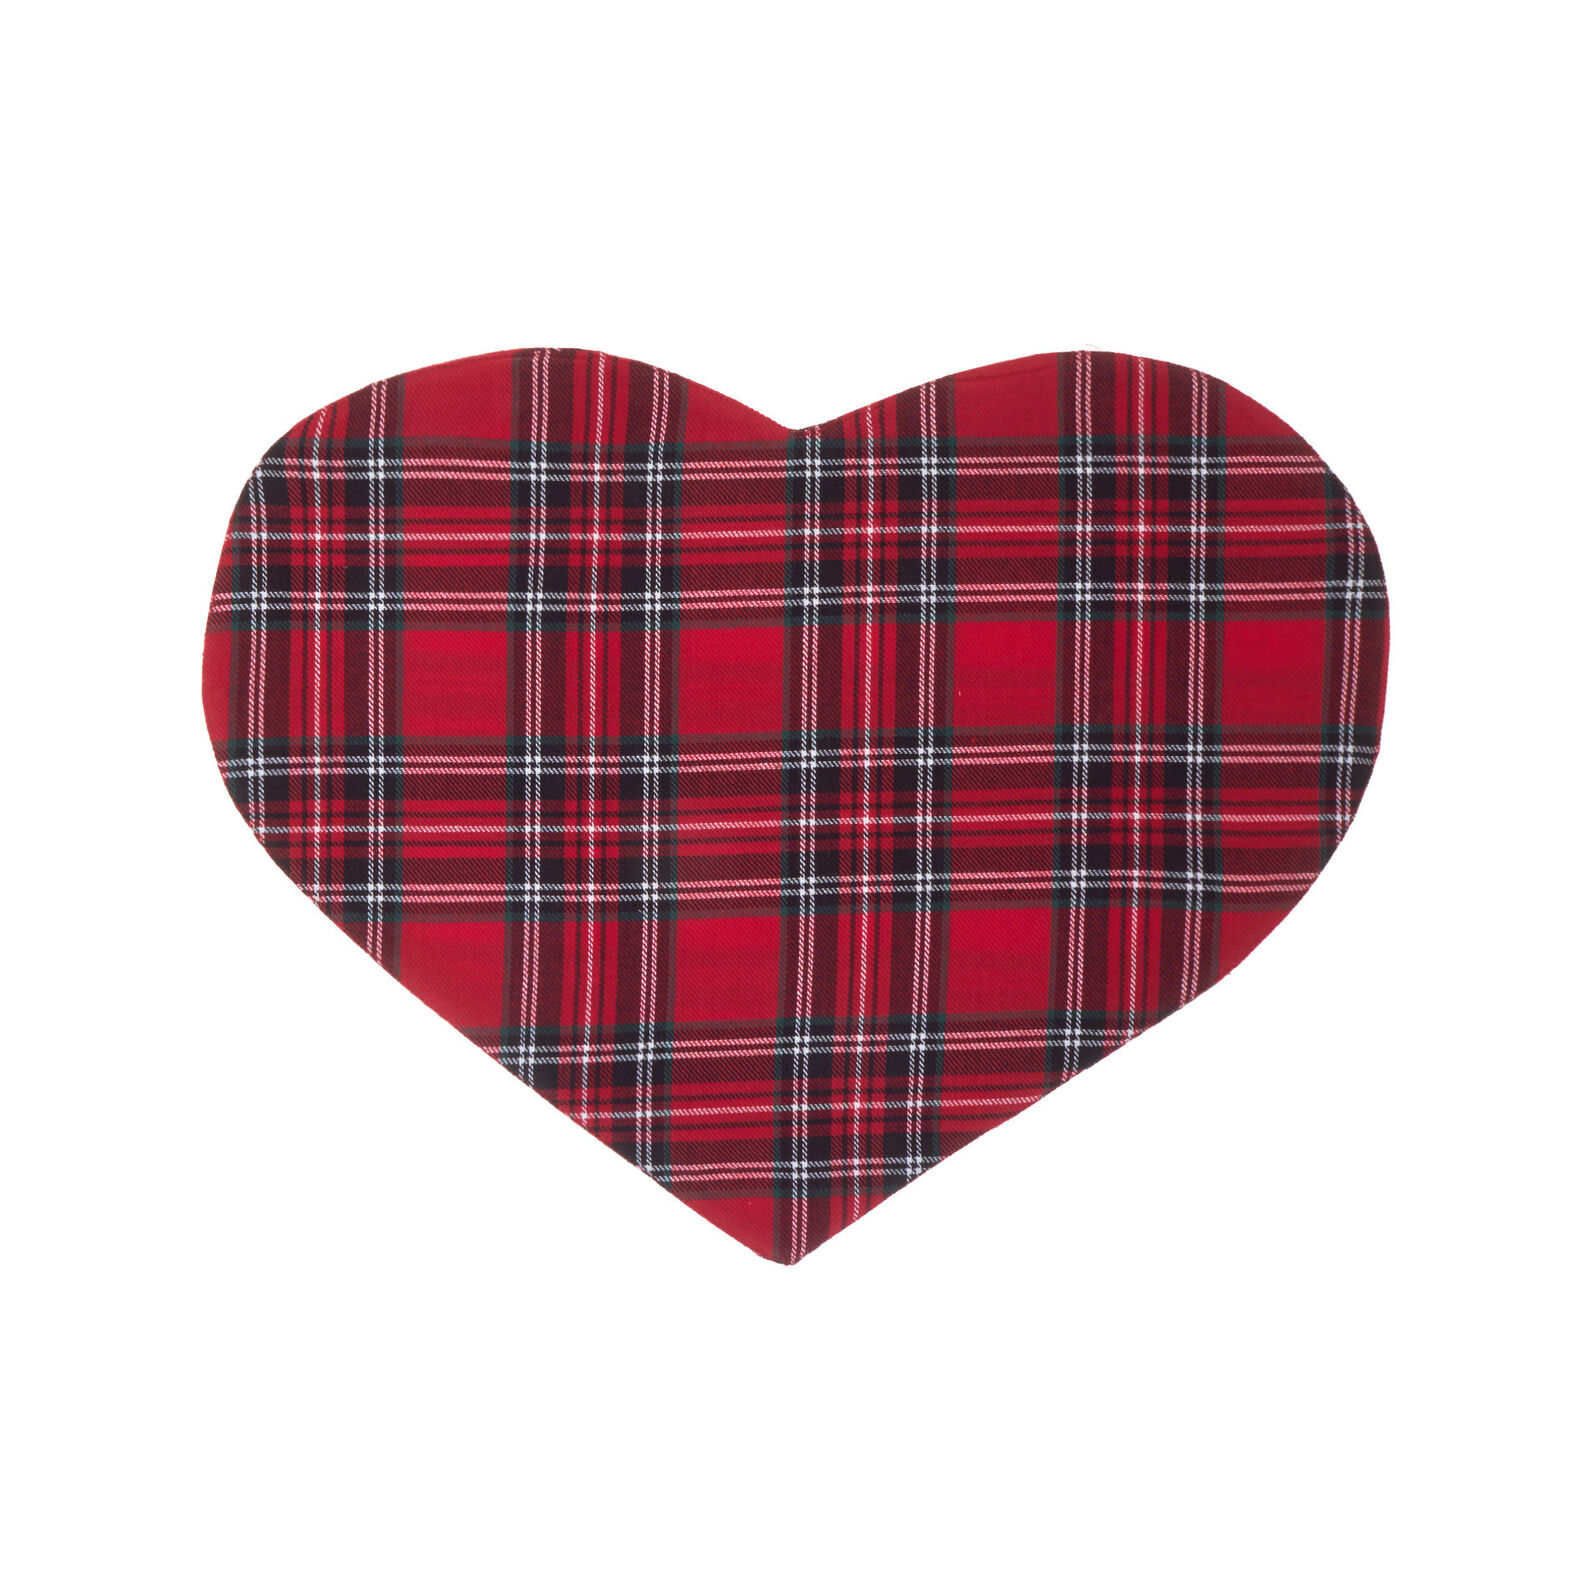 Heart-shaped table mat in cotton twill with tartan motif